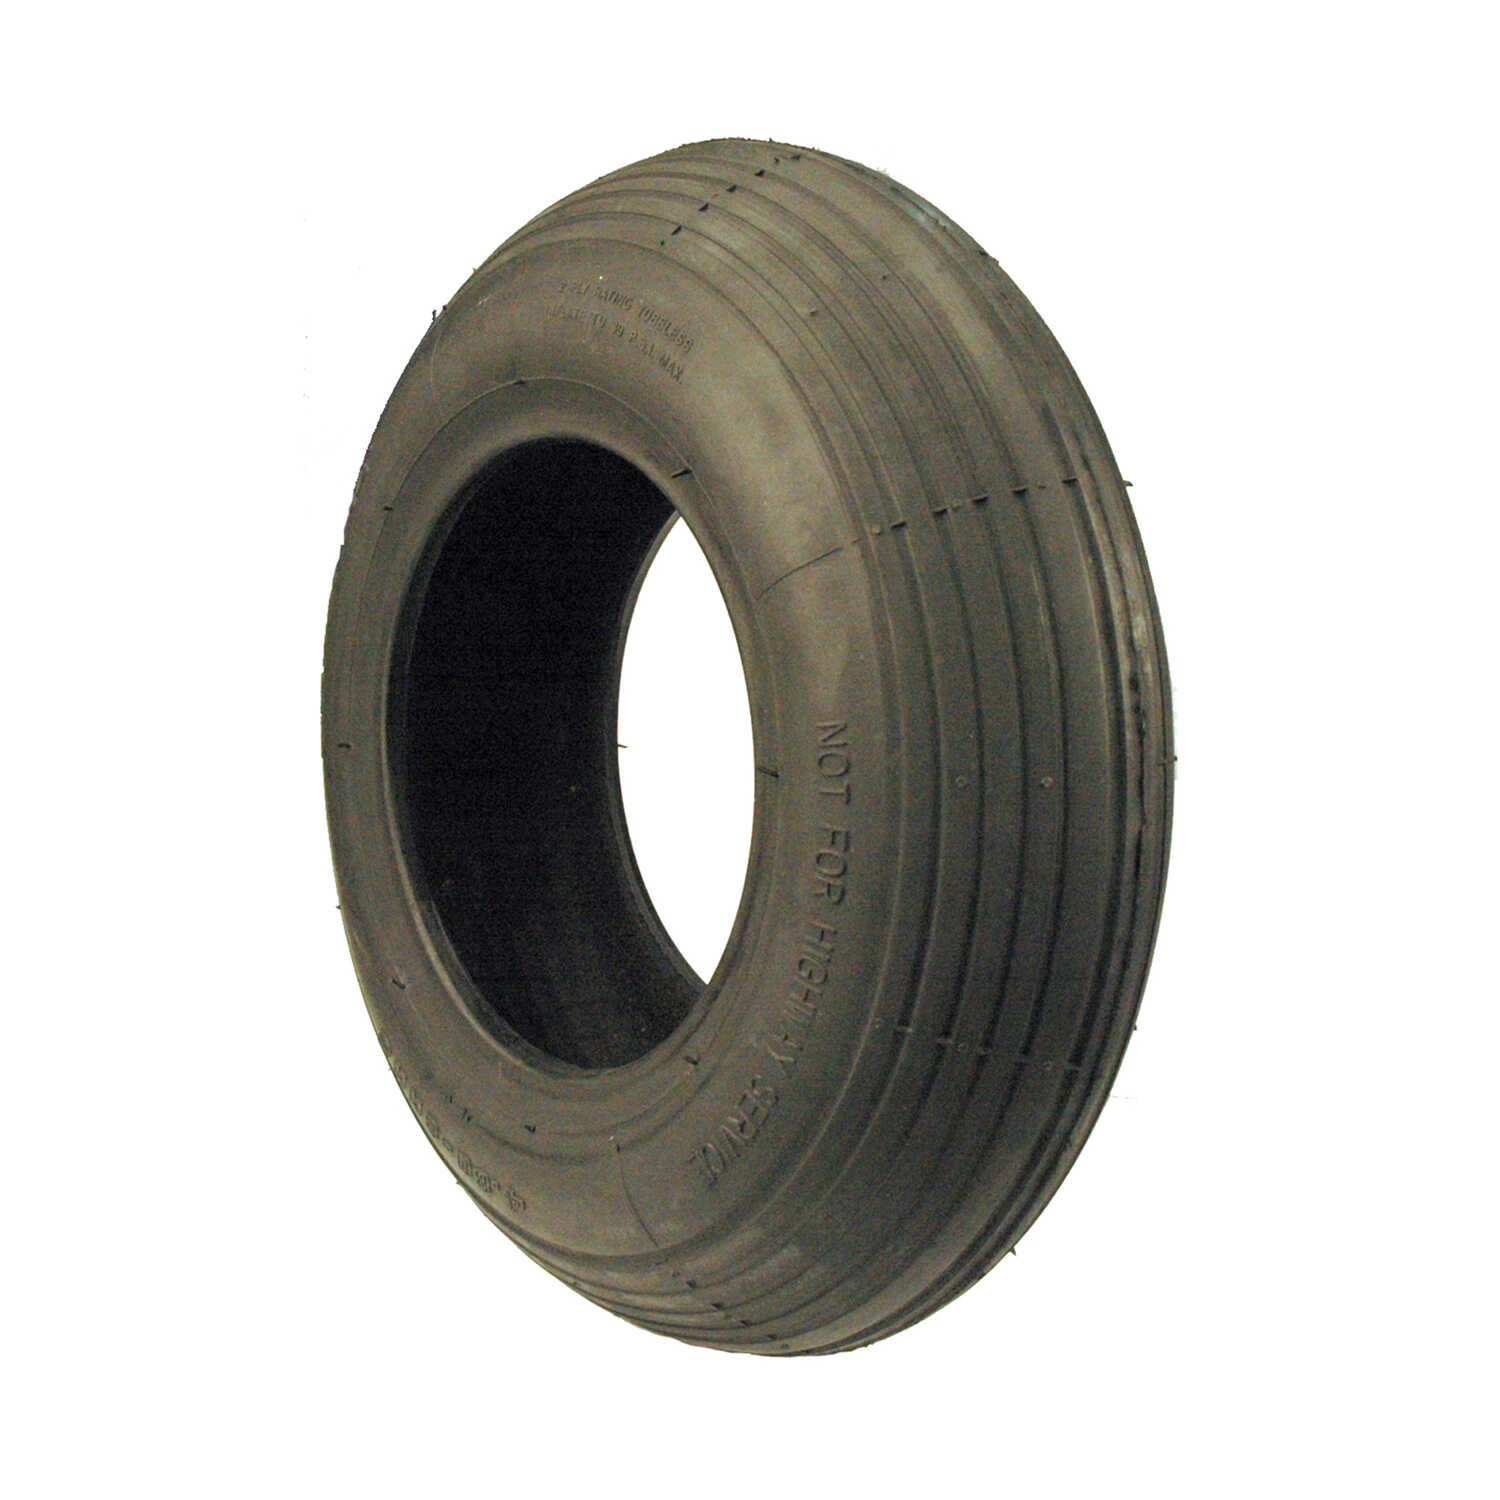 MaxPower  13 in. Dia. 300 lb. Wheelbarrow Tire  Rubber  1 pk